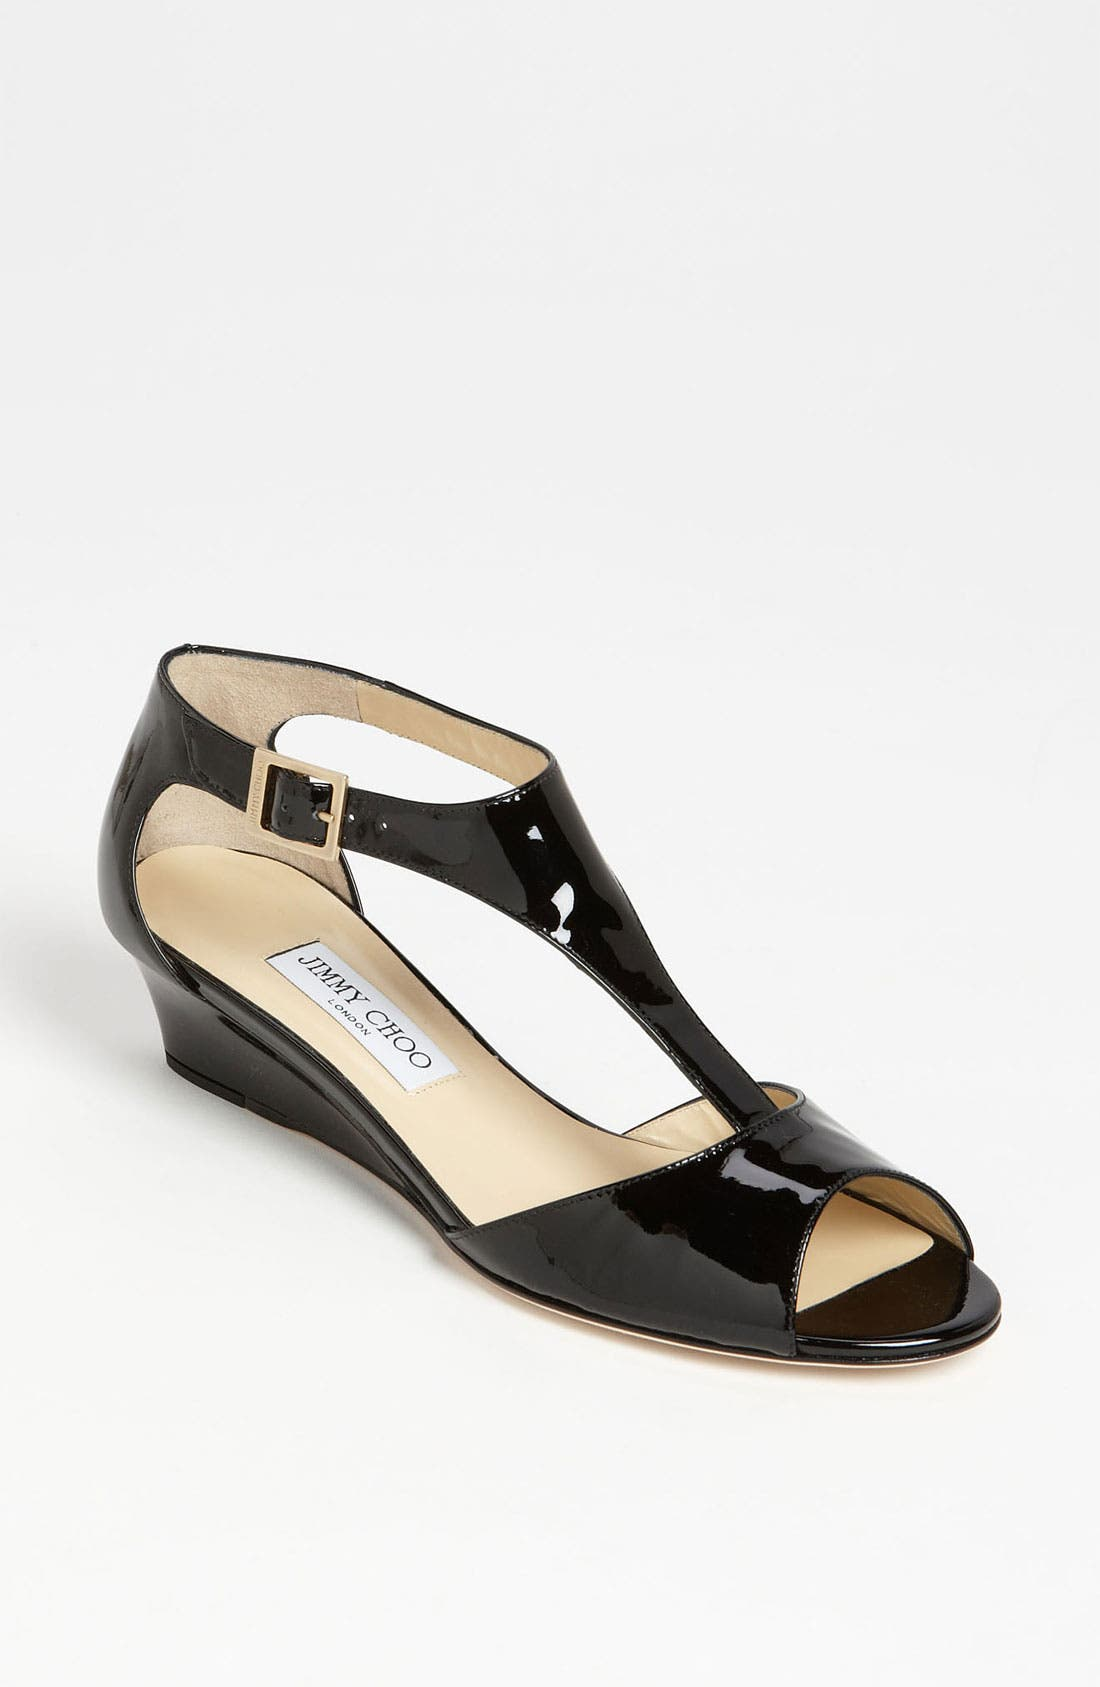 Alternate Image 1 Selected - Jimmy Choo 'Treat' T-Strap Sandal